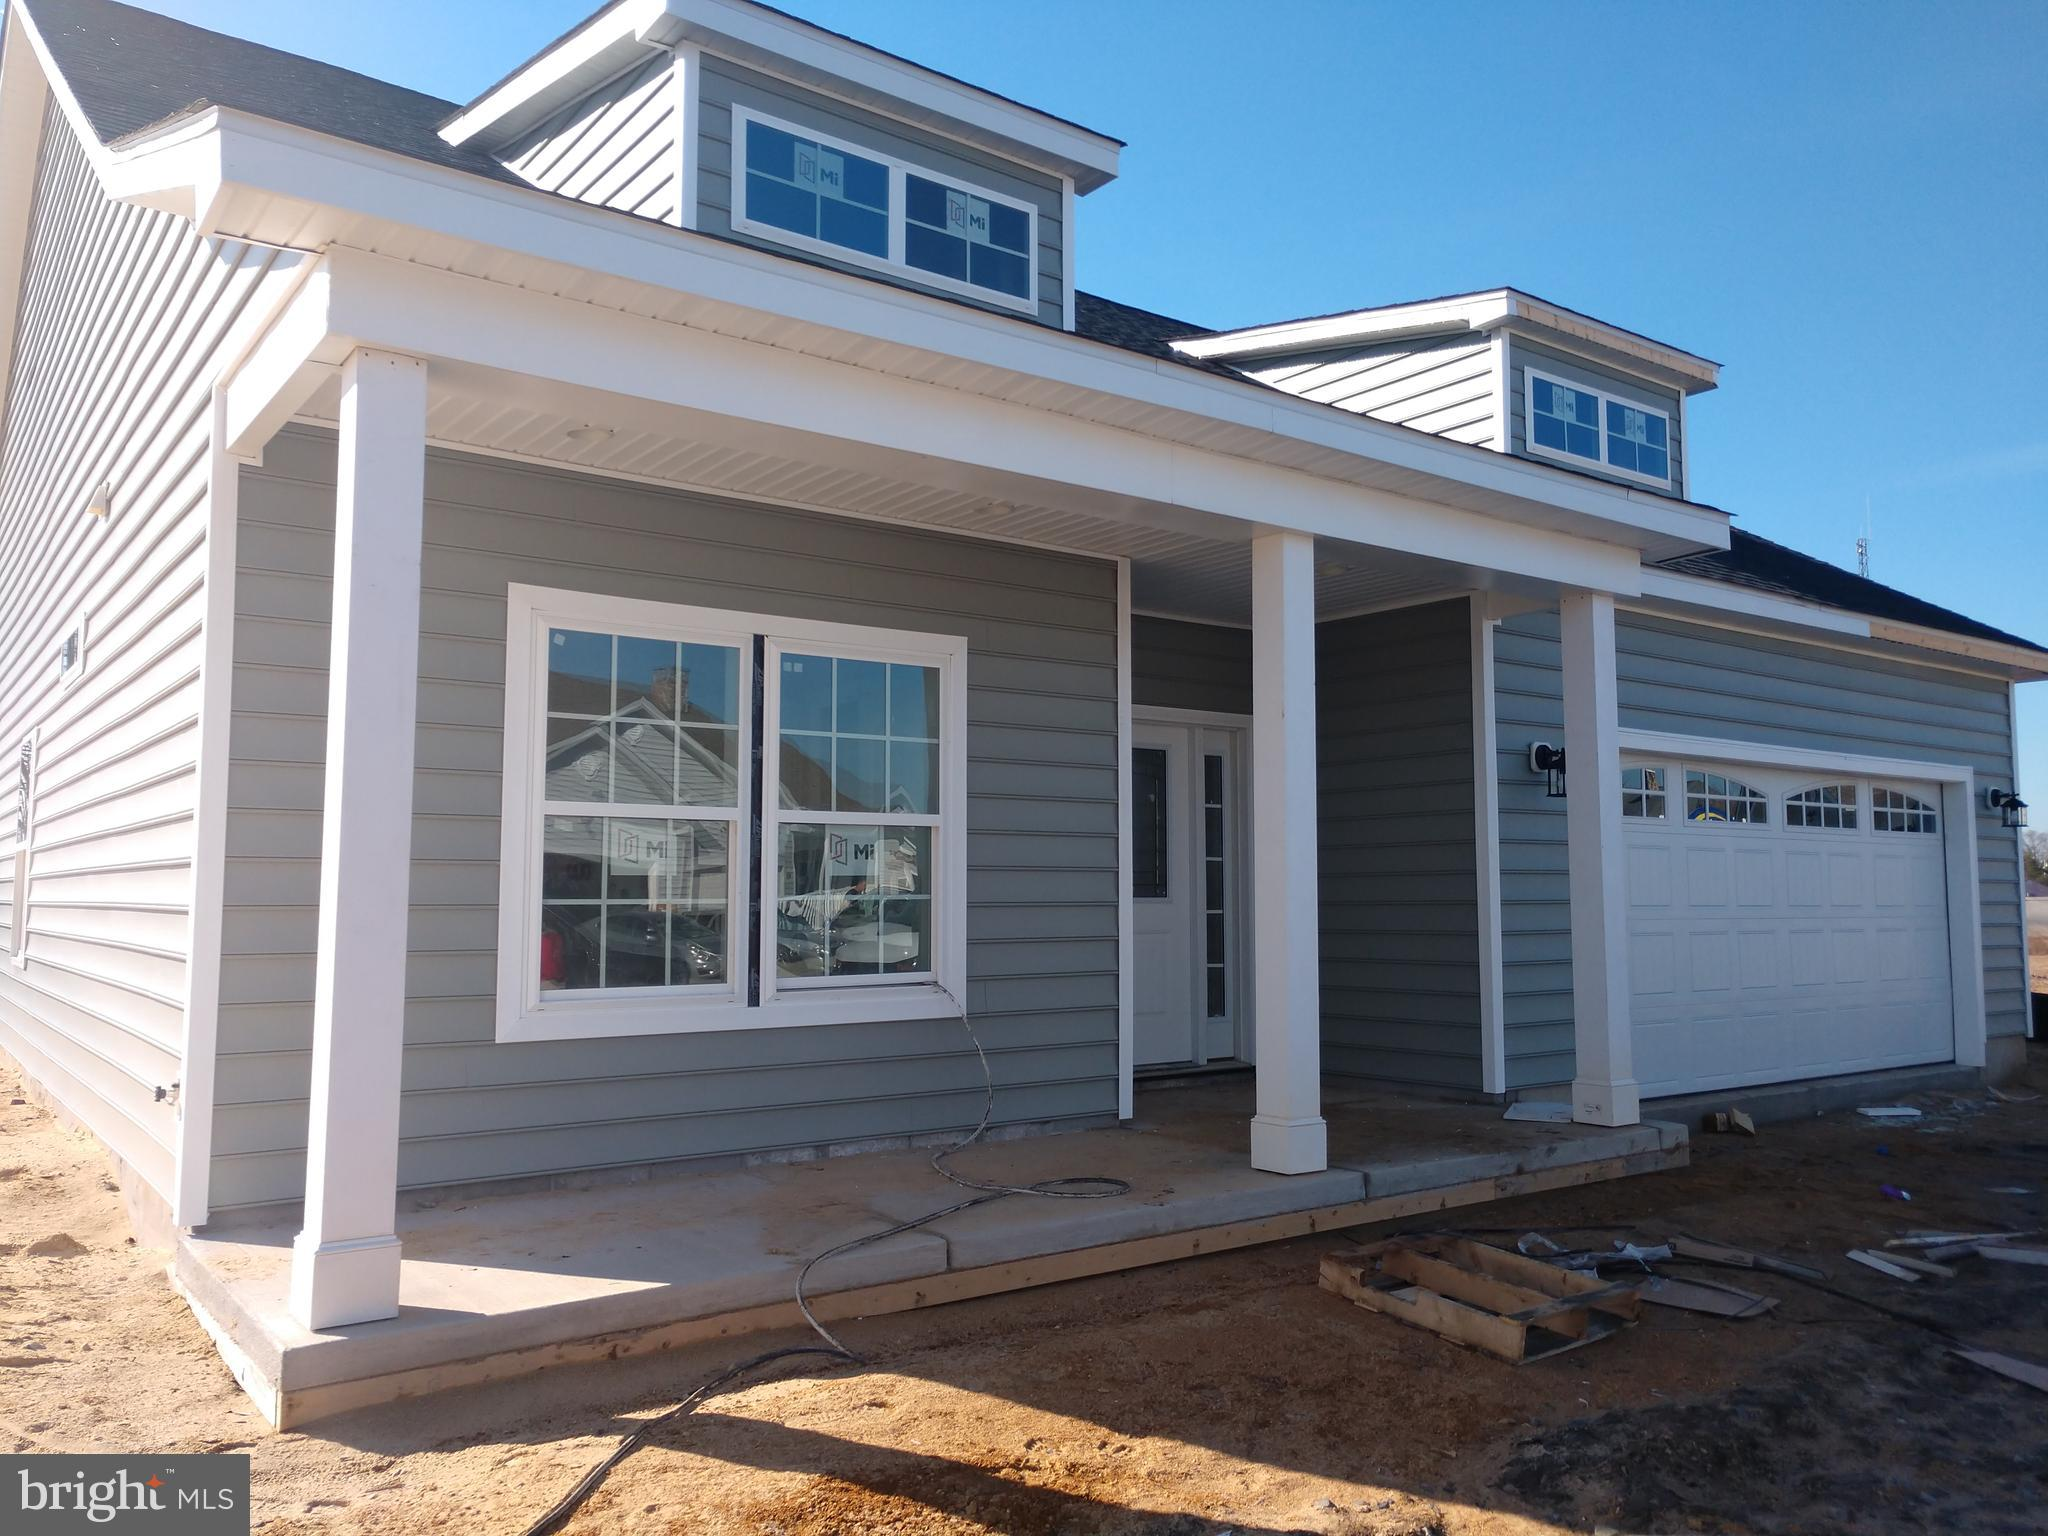 Currently under construction in the Village of Cinderberry is this 3 bedroom, 2 bathroom single fami